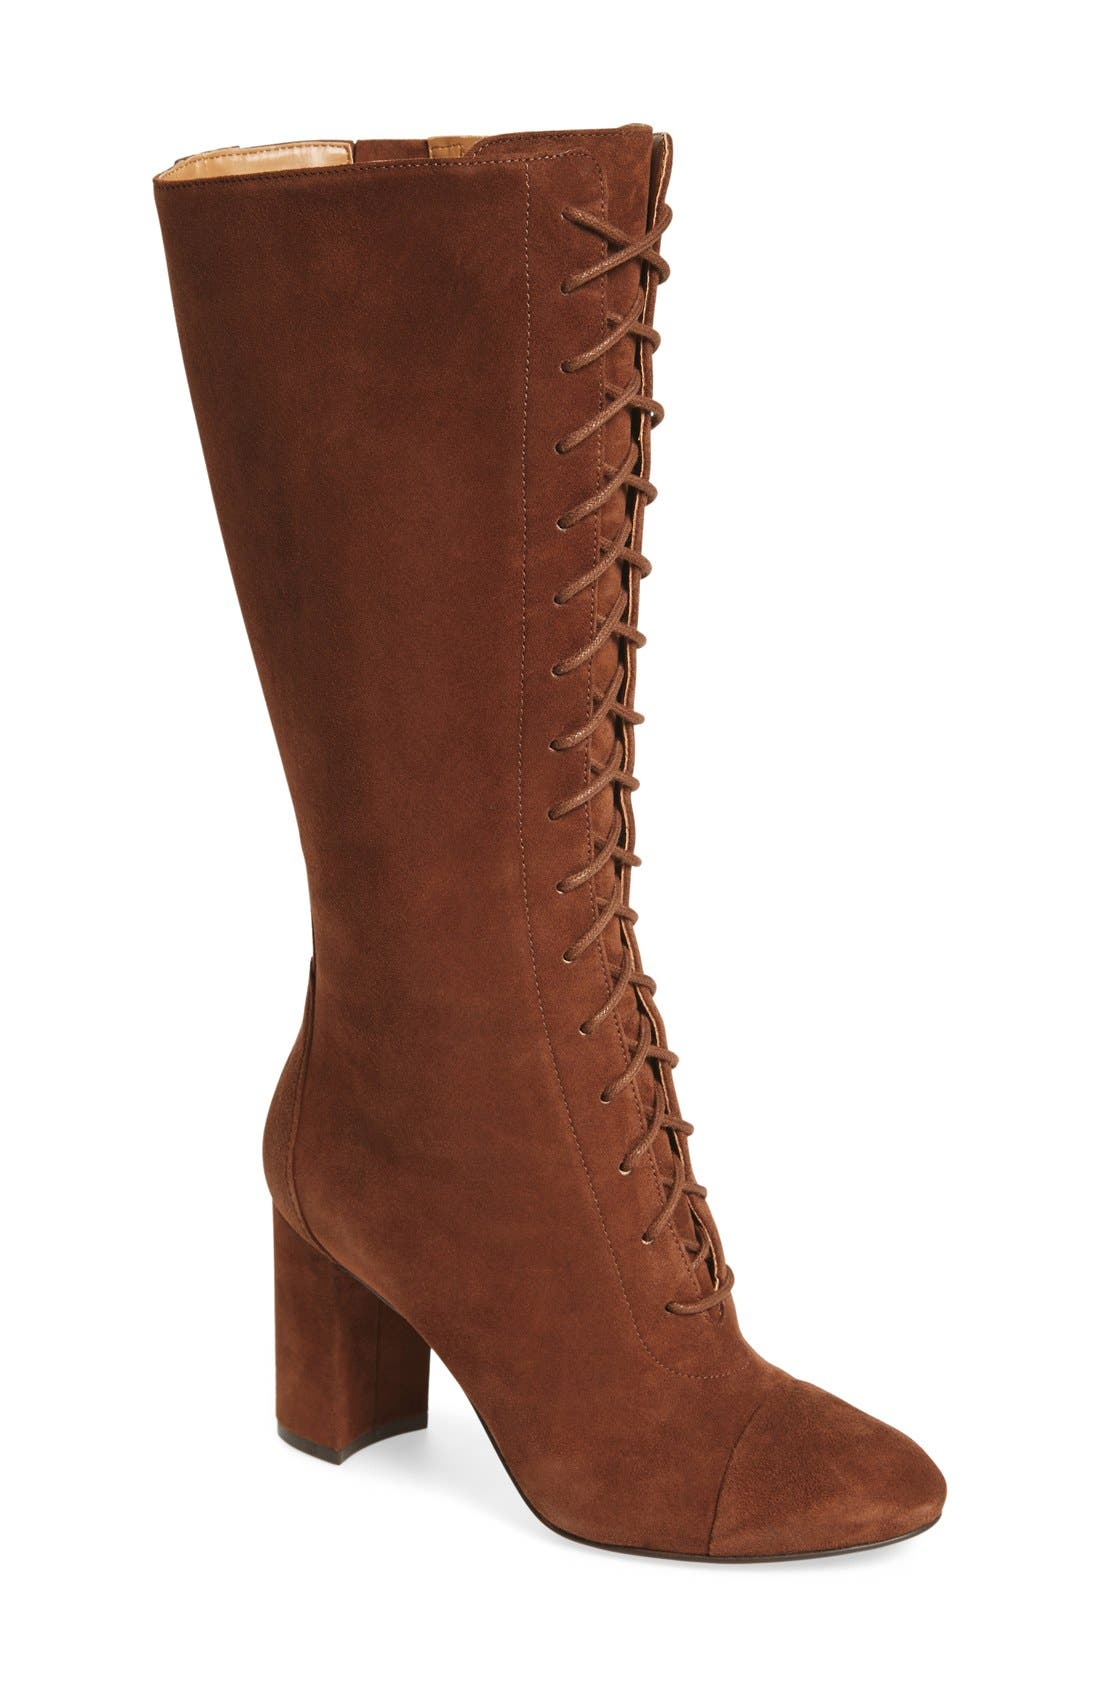 Main Image - Nine West 'Waterfall' Lace-Up Knee High Boot (Women)